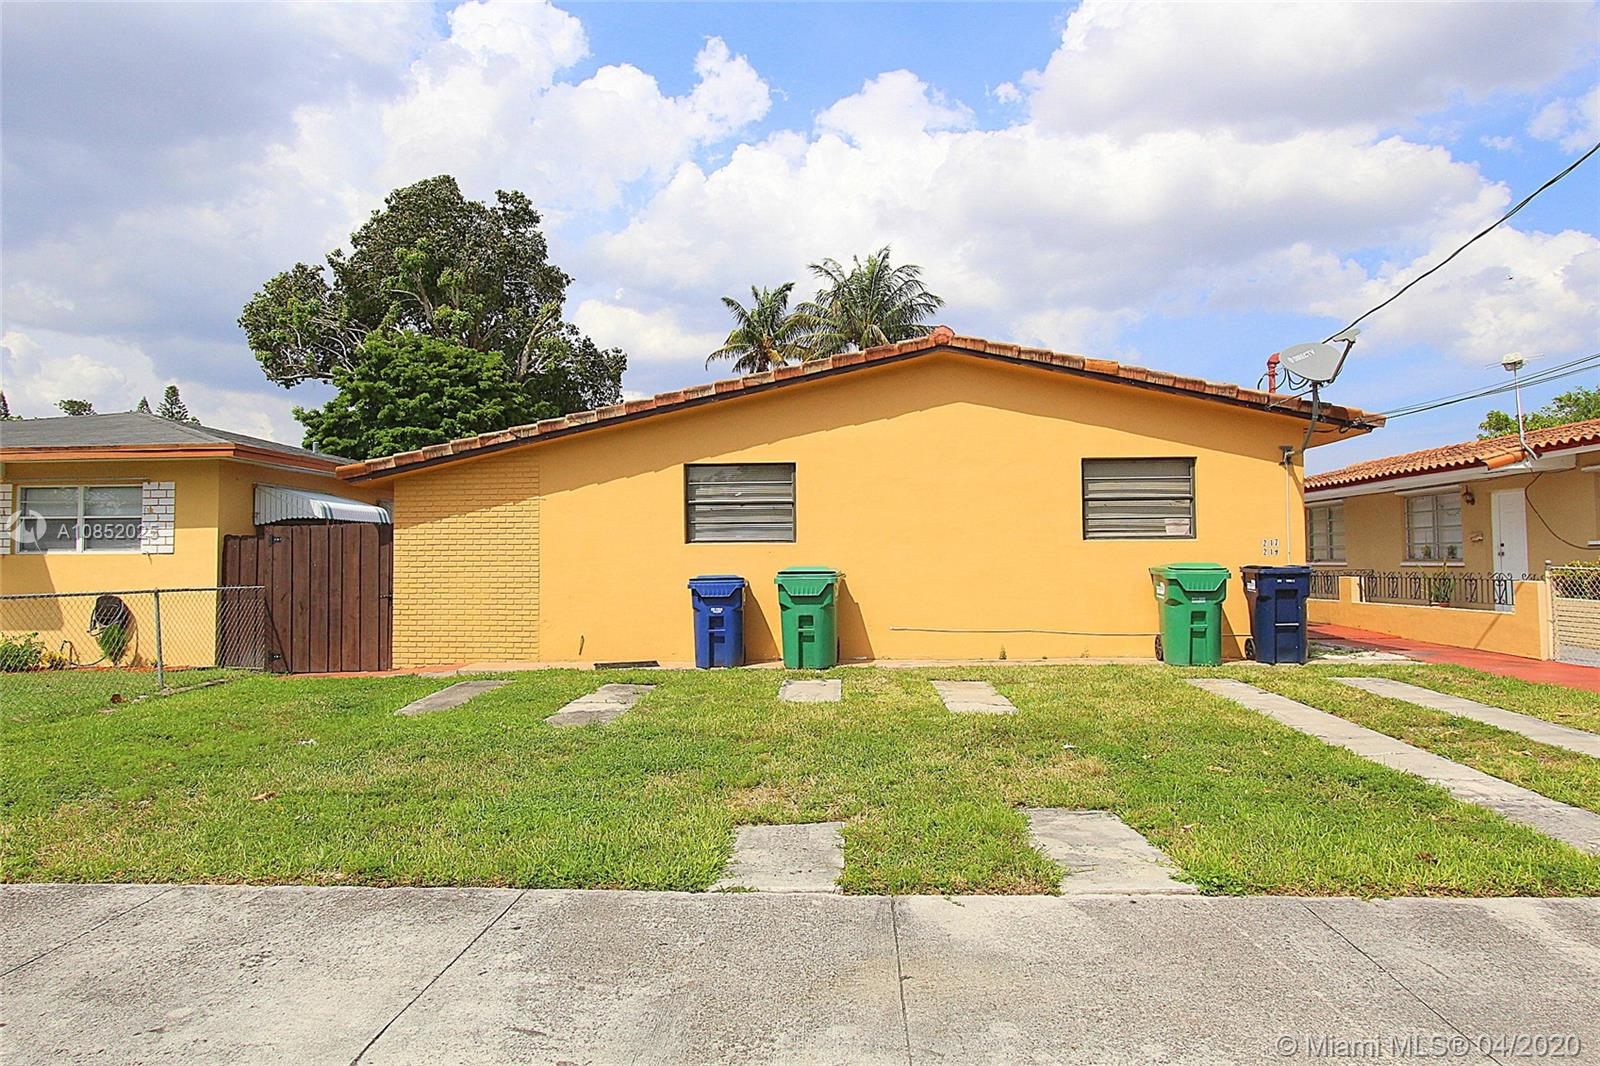 Unbeatable location with easy access to expressways, large retail centers and schools. One of the best rental markets in the area. Large units with good layout. Barrel tile roof and some updates completed. Non-conforming triplex use on duplex zoning. Please complete your due diligence. Multiple Offer. Highest and best offer due by 10:00AM on May, 21st, 2020.